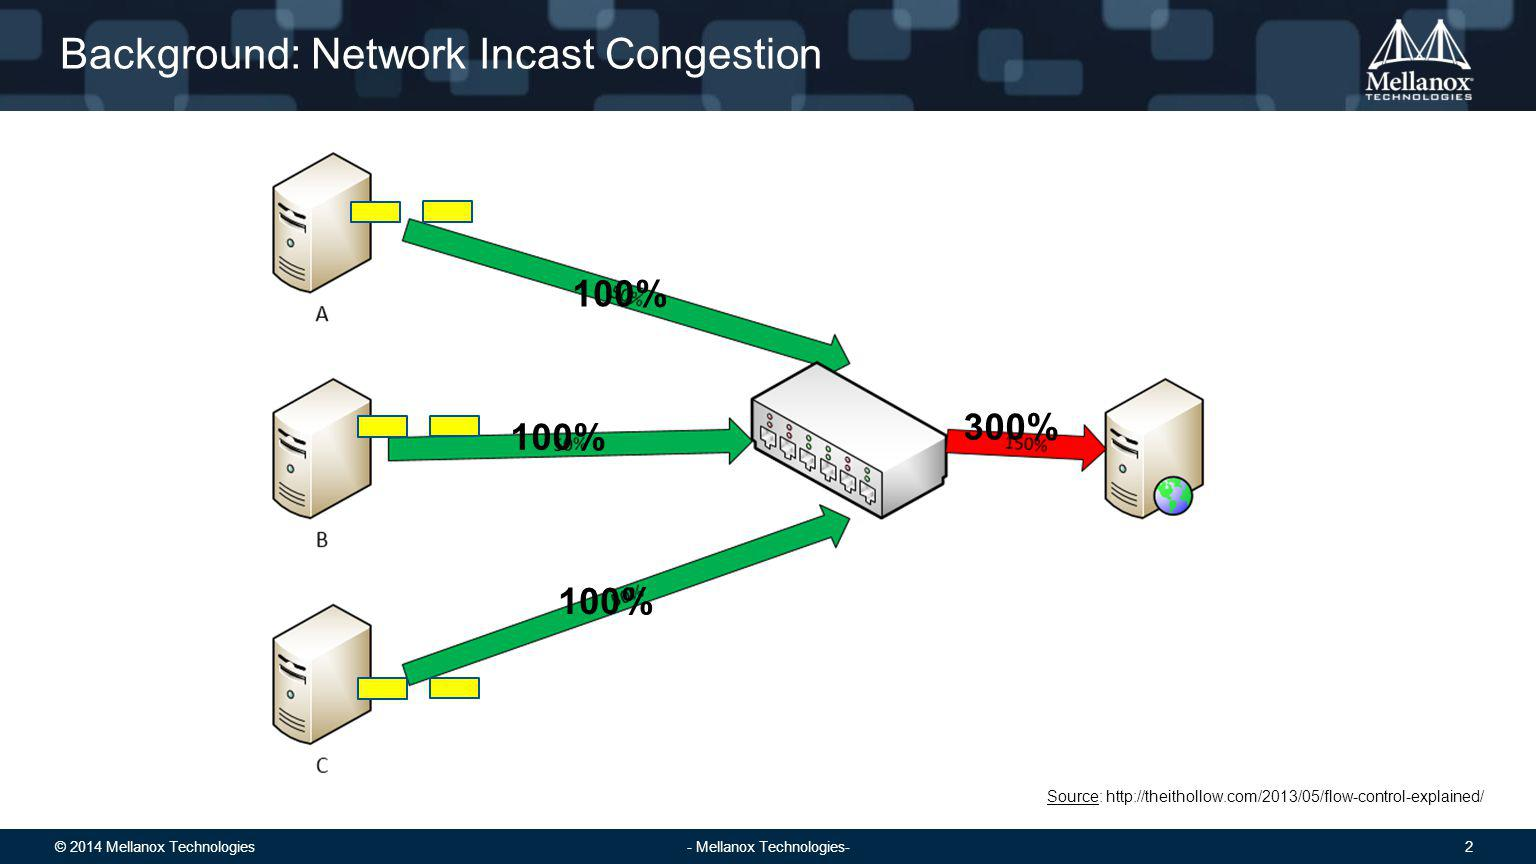 © 2014 Mellanox Technologies 2 - Mellanox Technologies- Background: Network Incast Congestion Source: http://theithollow.com/2013/05/flow-control-explained/ 100% 300%